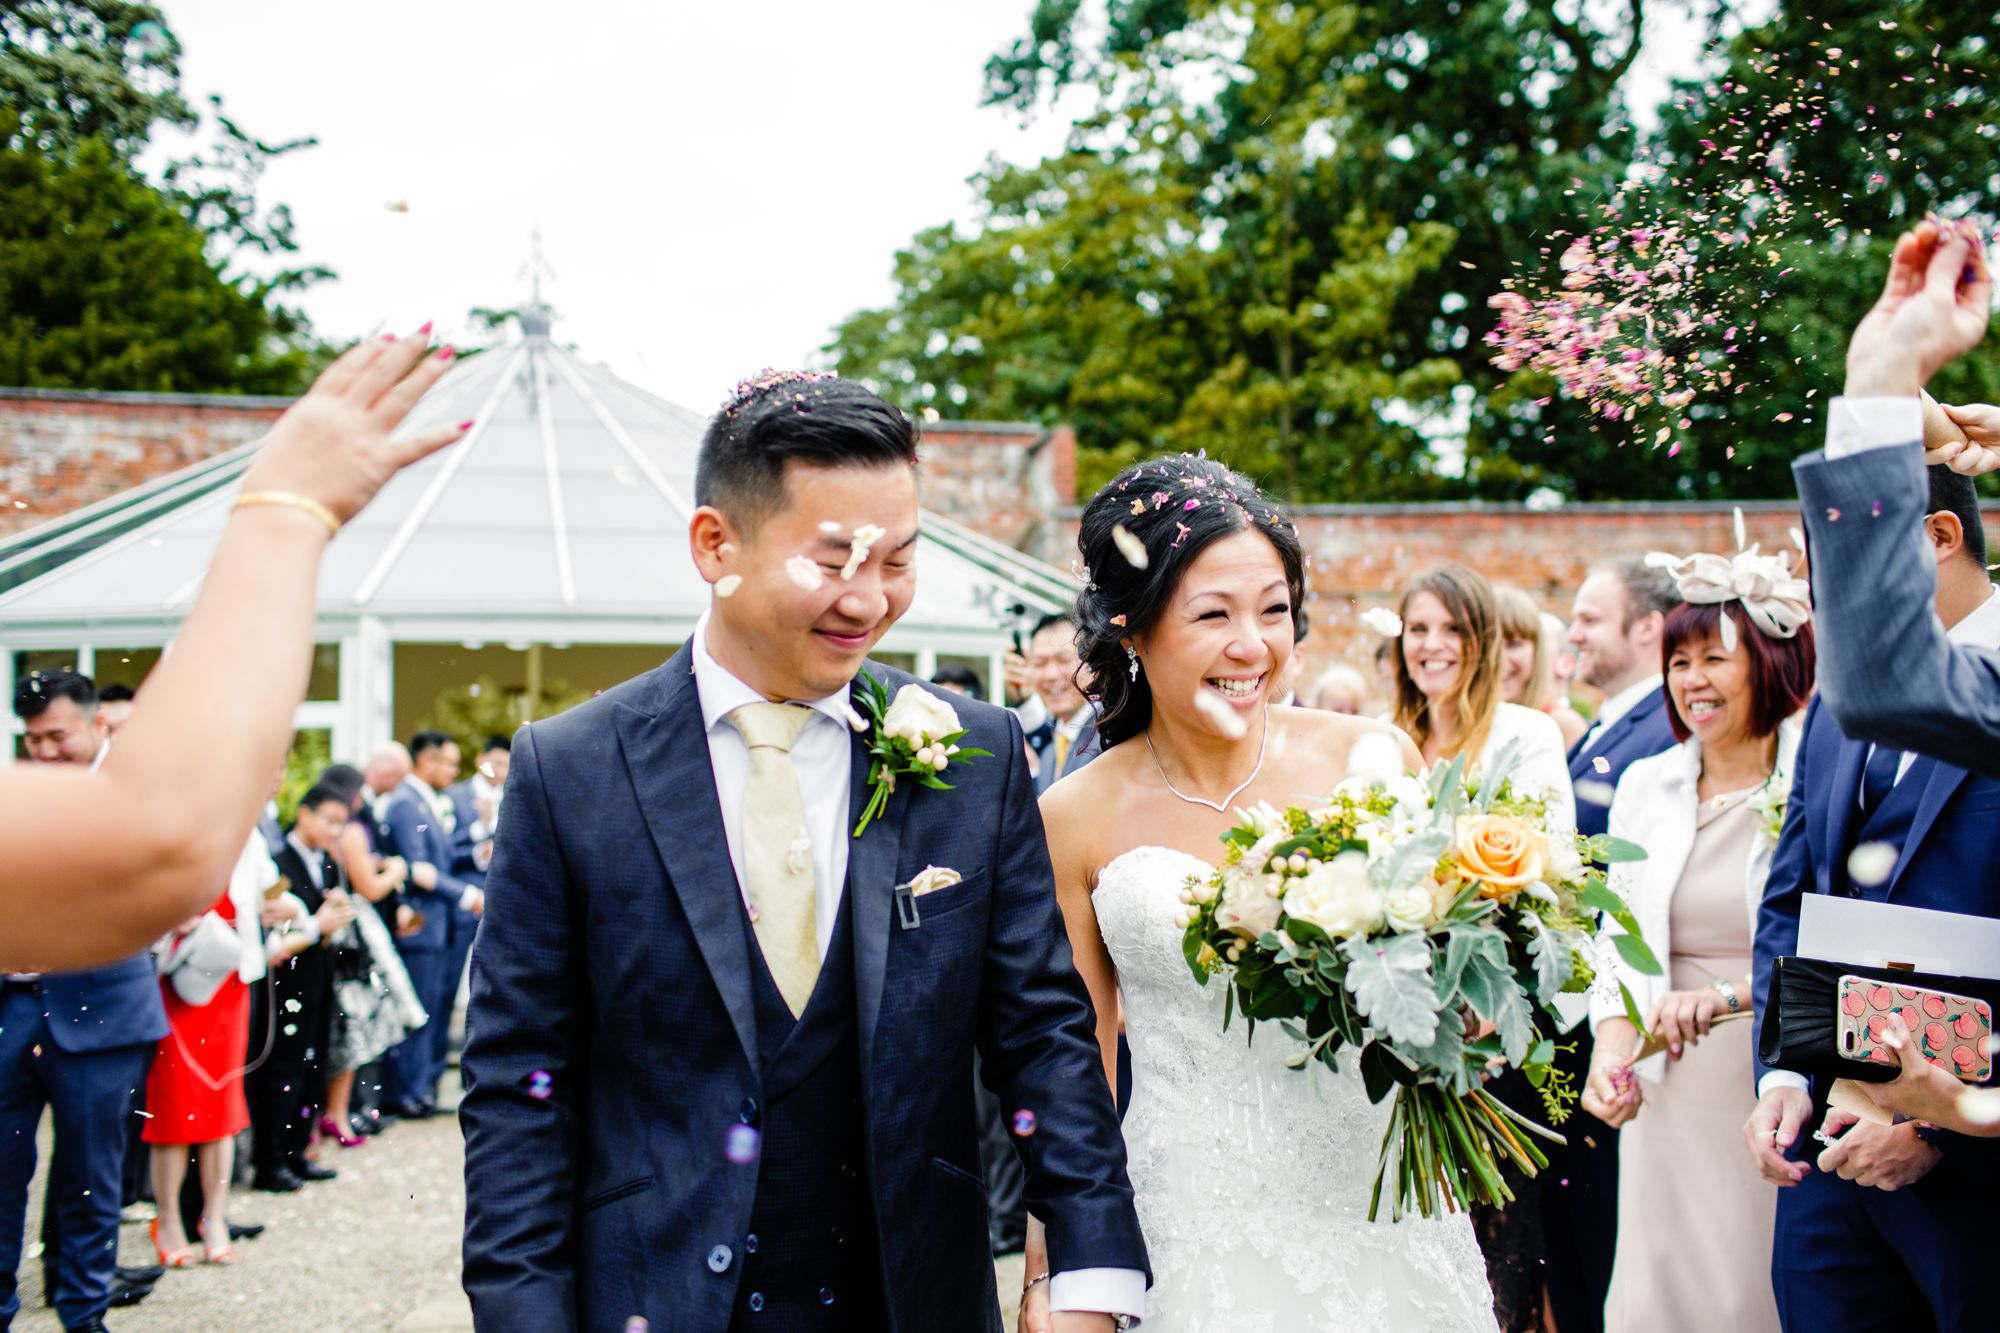 Combermere Abbey Cheshire Wedding Photographer-124.jpg